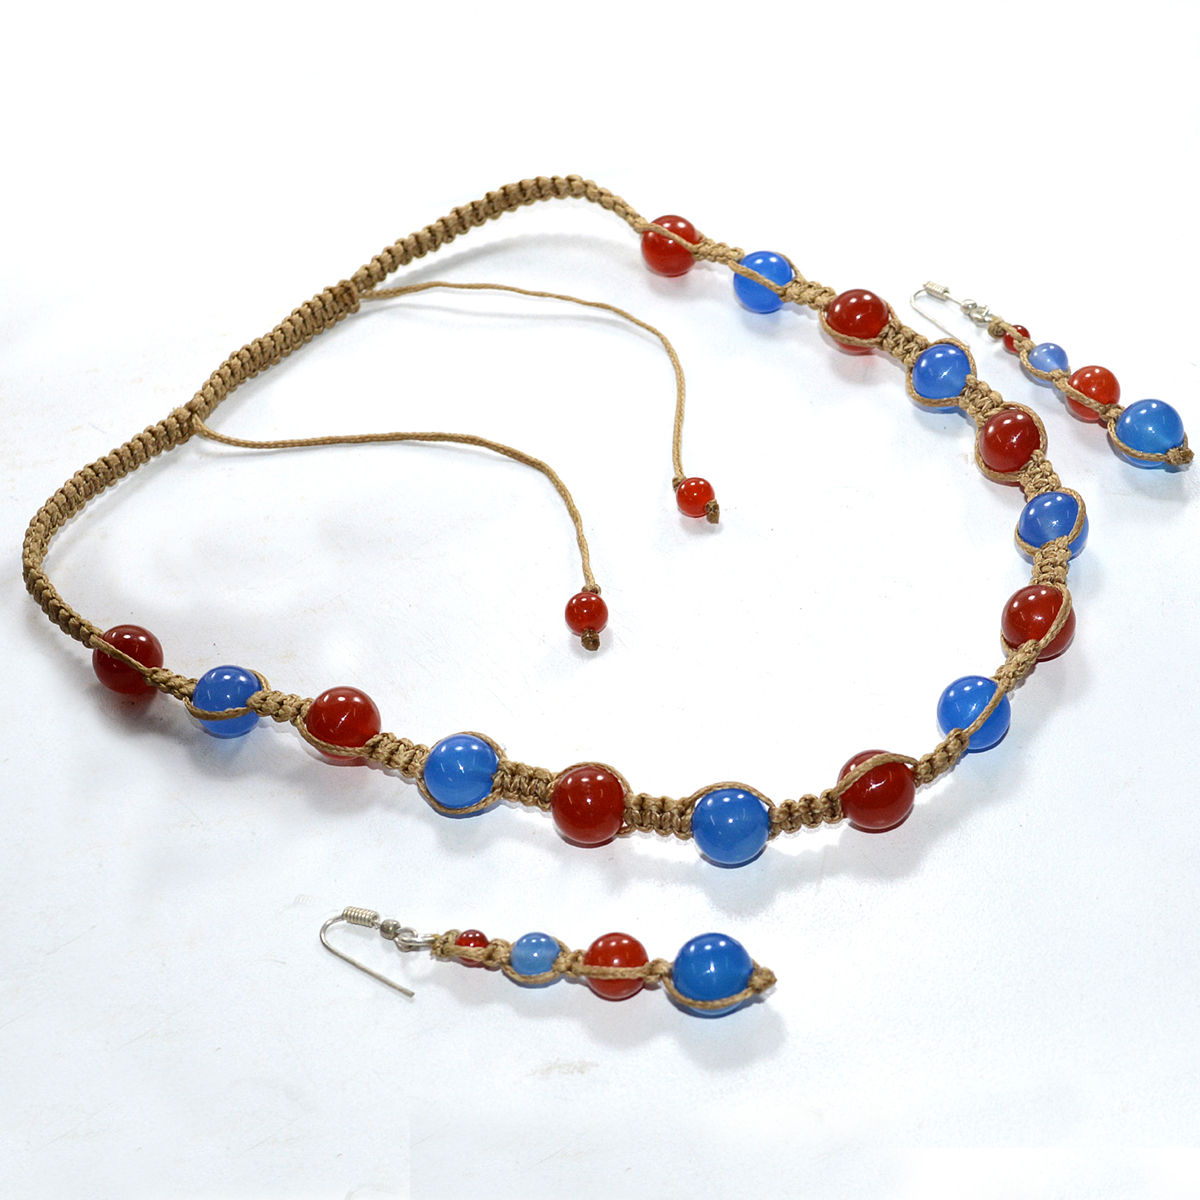 Jaipur Rajasthan India Bead Carnelian & Blue Chalcedony 925 Sterling Silver Necklace & Earring Set Handmade Jewelry Manufacturer